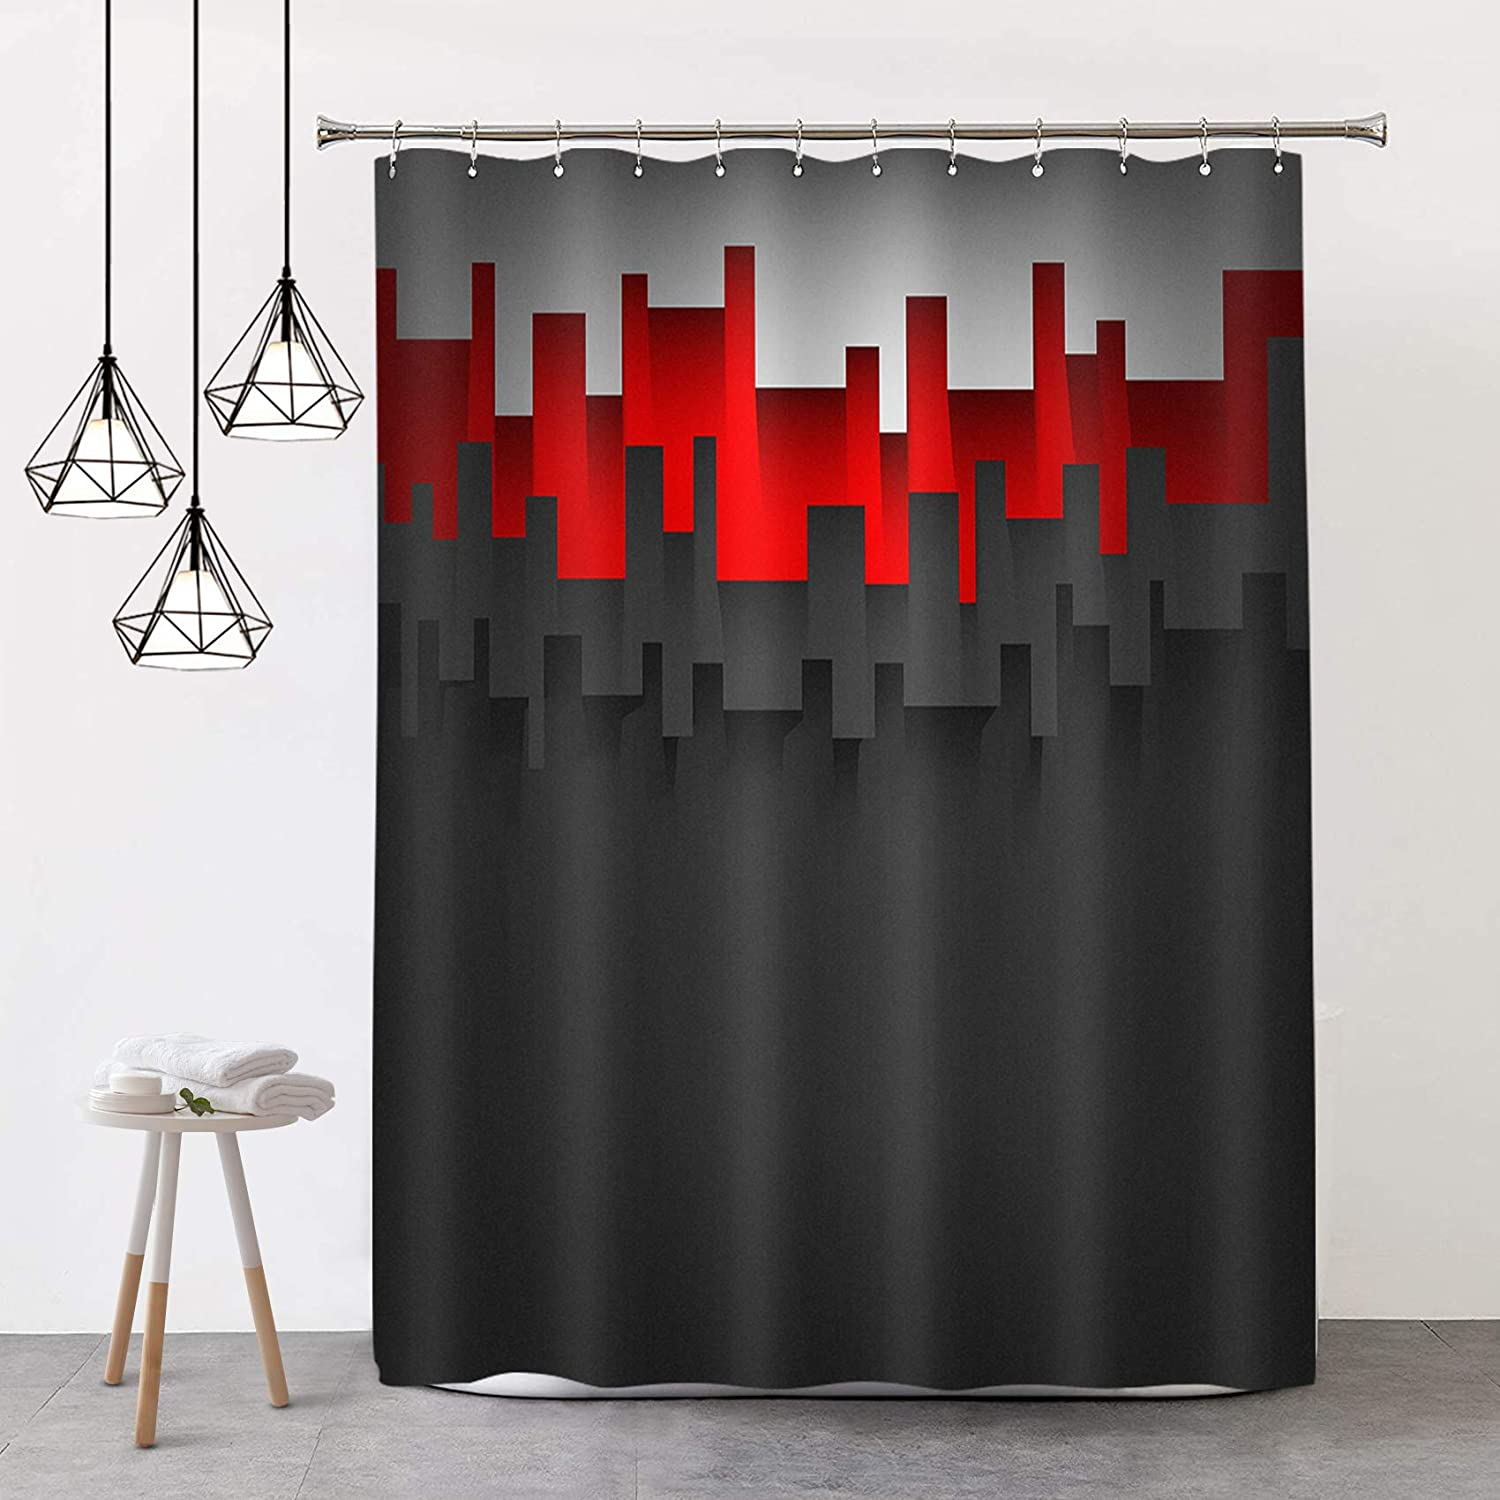 black grey rust red shower curtain 3d abstraction geometry pattern fashion cool sexy modern apartment bathroom decor set with hooks 72 x 72 inch